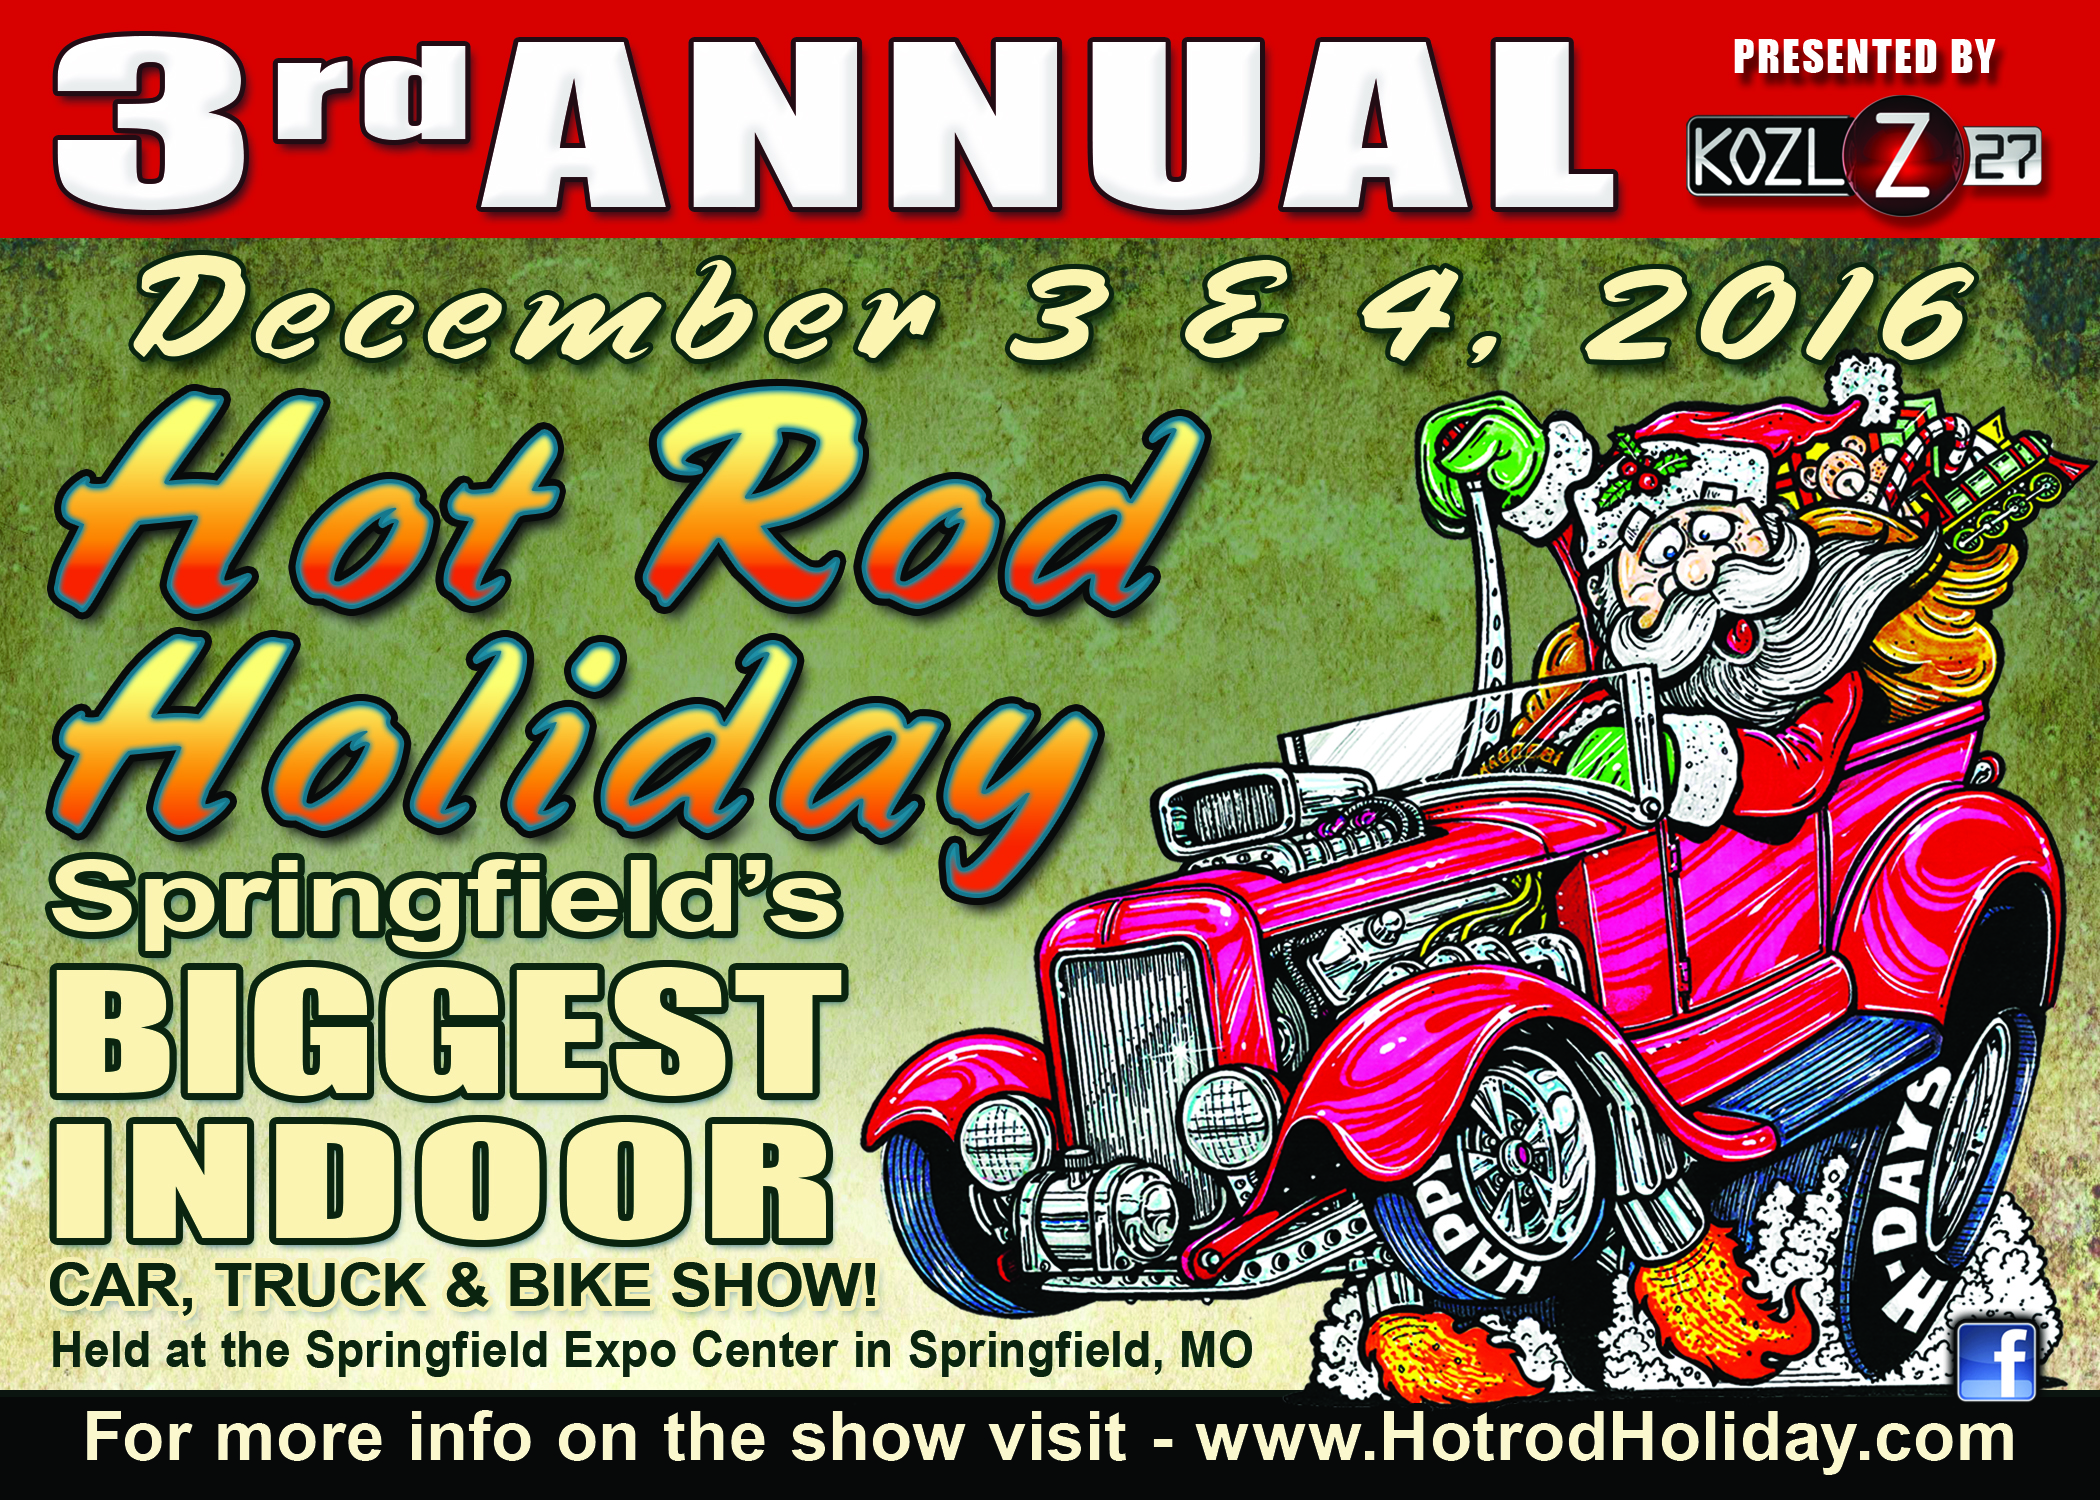 hot rod holiday 2016 promo